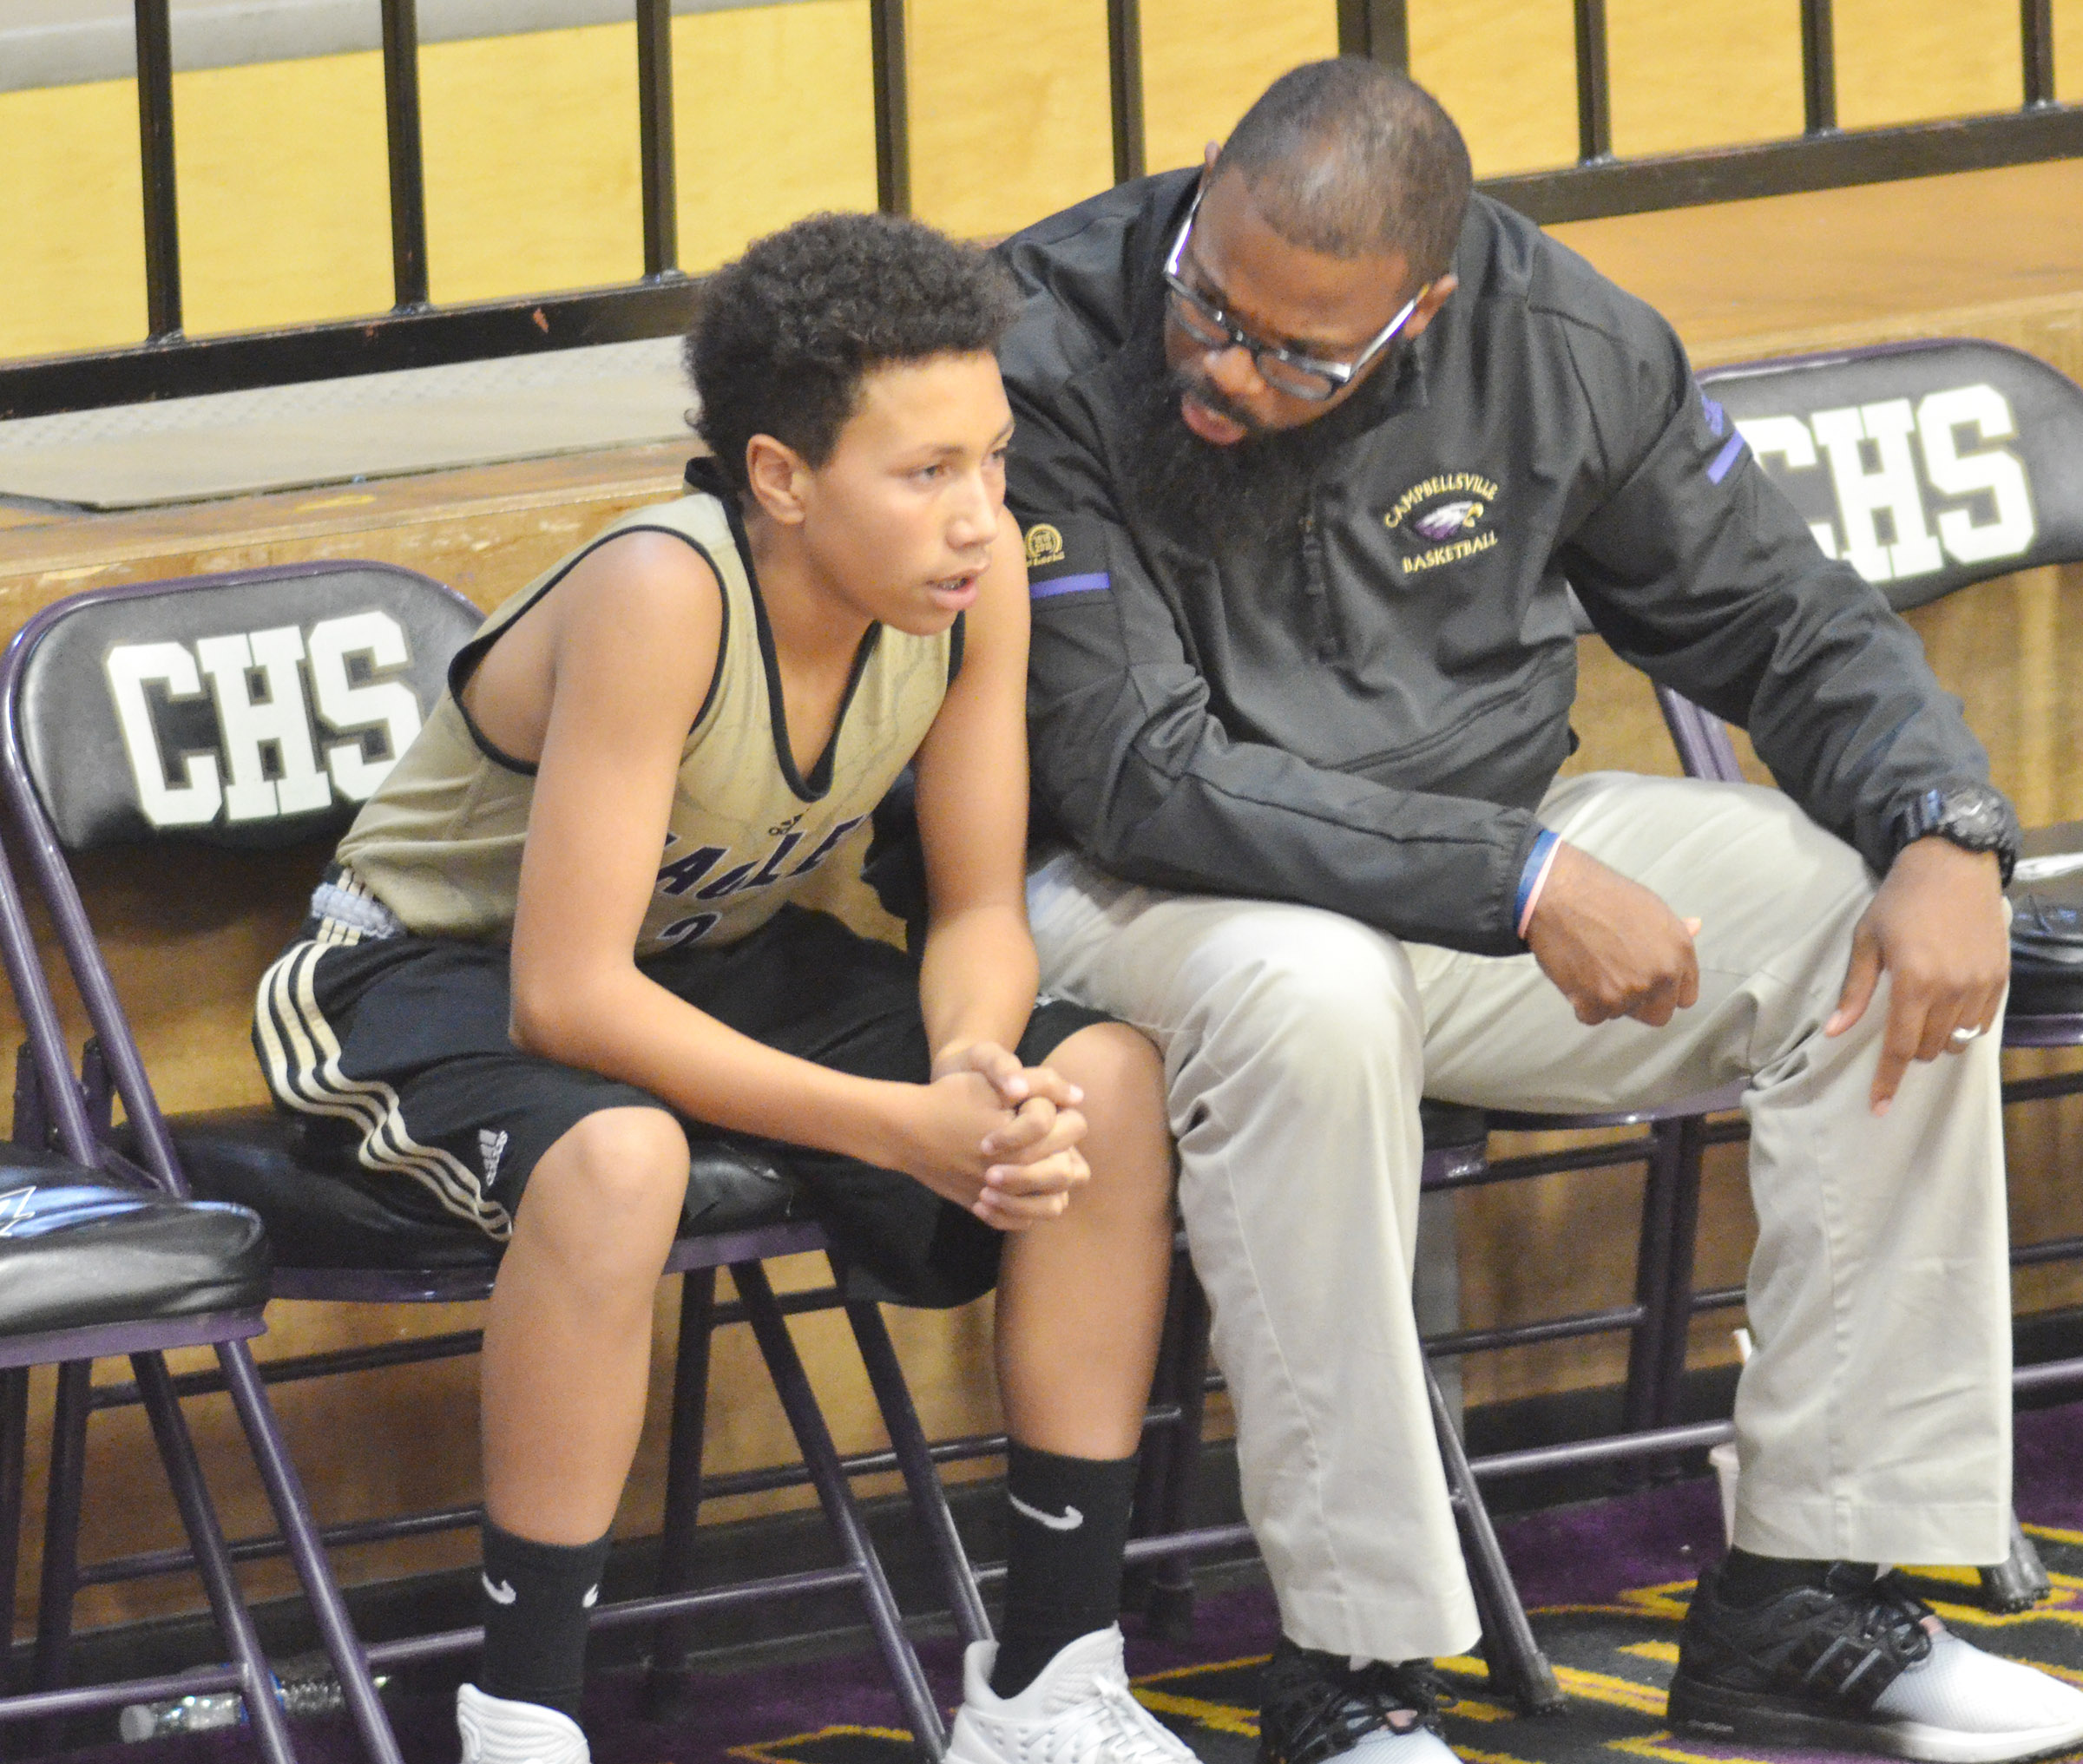 CHS freshman Jastyn Shively talks to assistant coach Will Griffin.